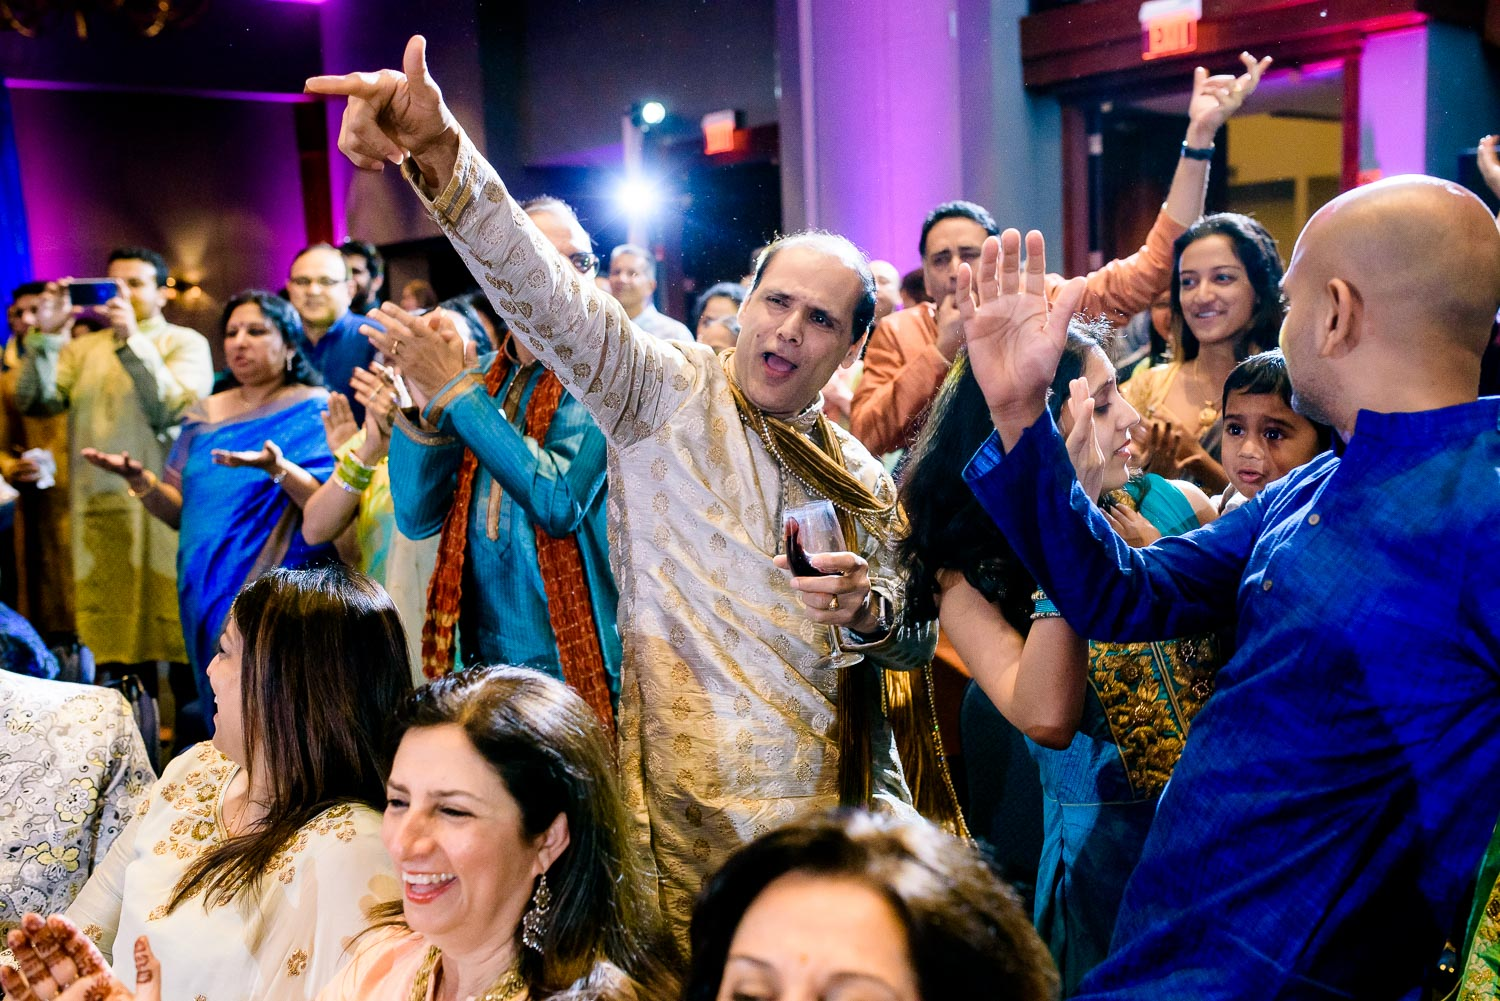 The crowd celebrates during an Indian wedding sangeet at Stonegate Banquets in Hoffman Estates.